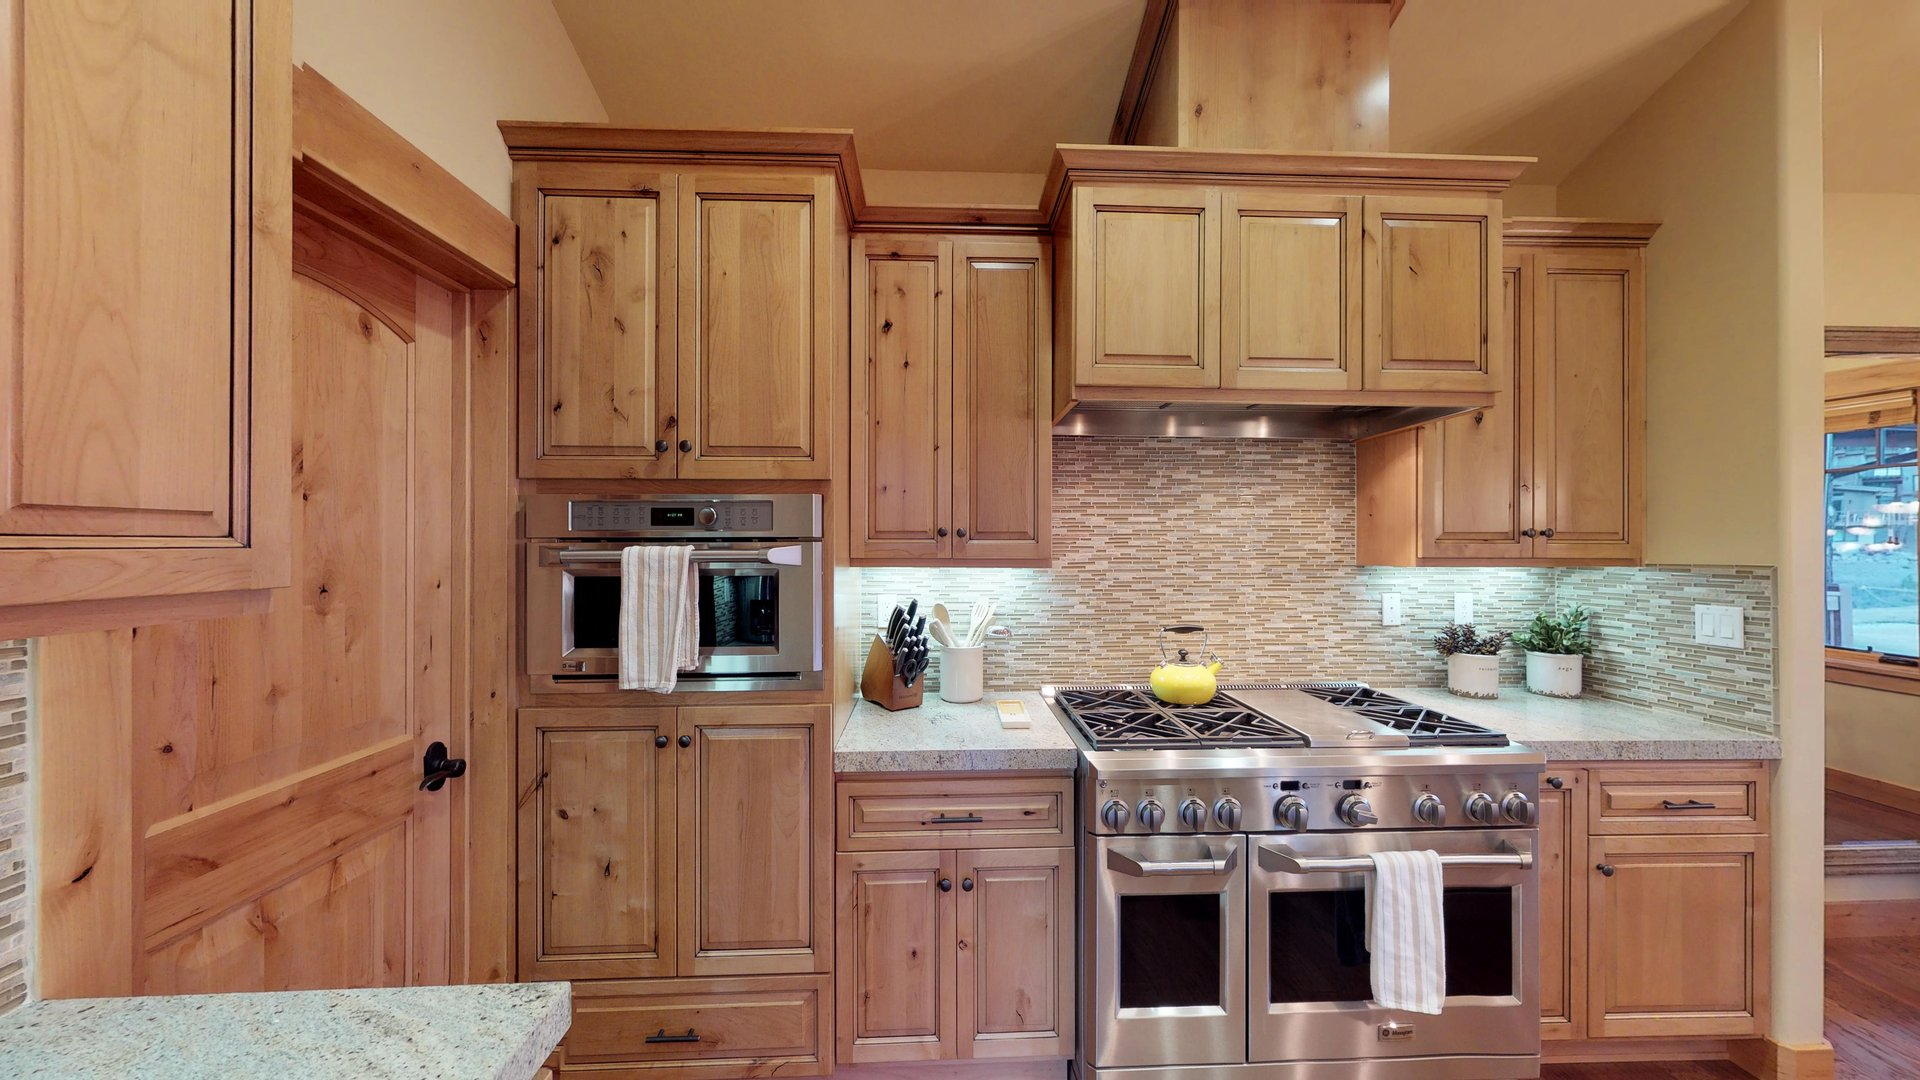 An Image of Wood Cabinets and Stainless Steele Appliances.